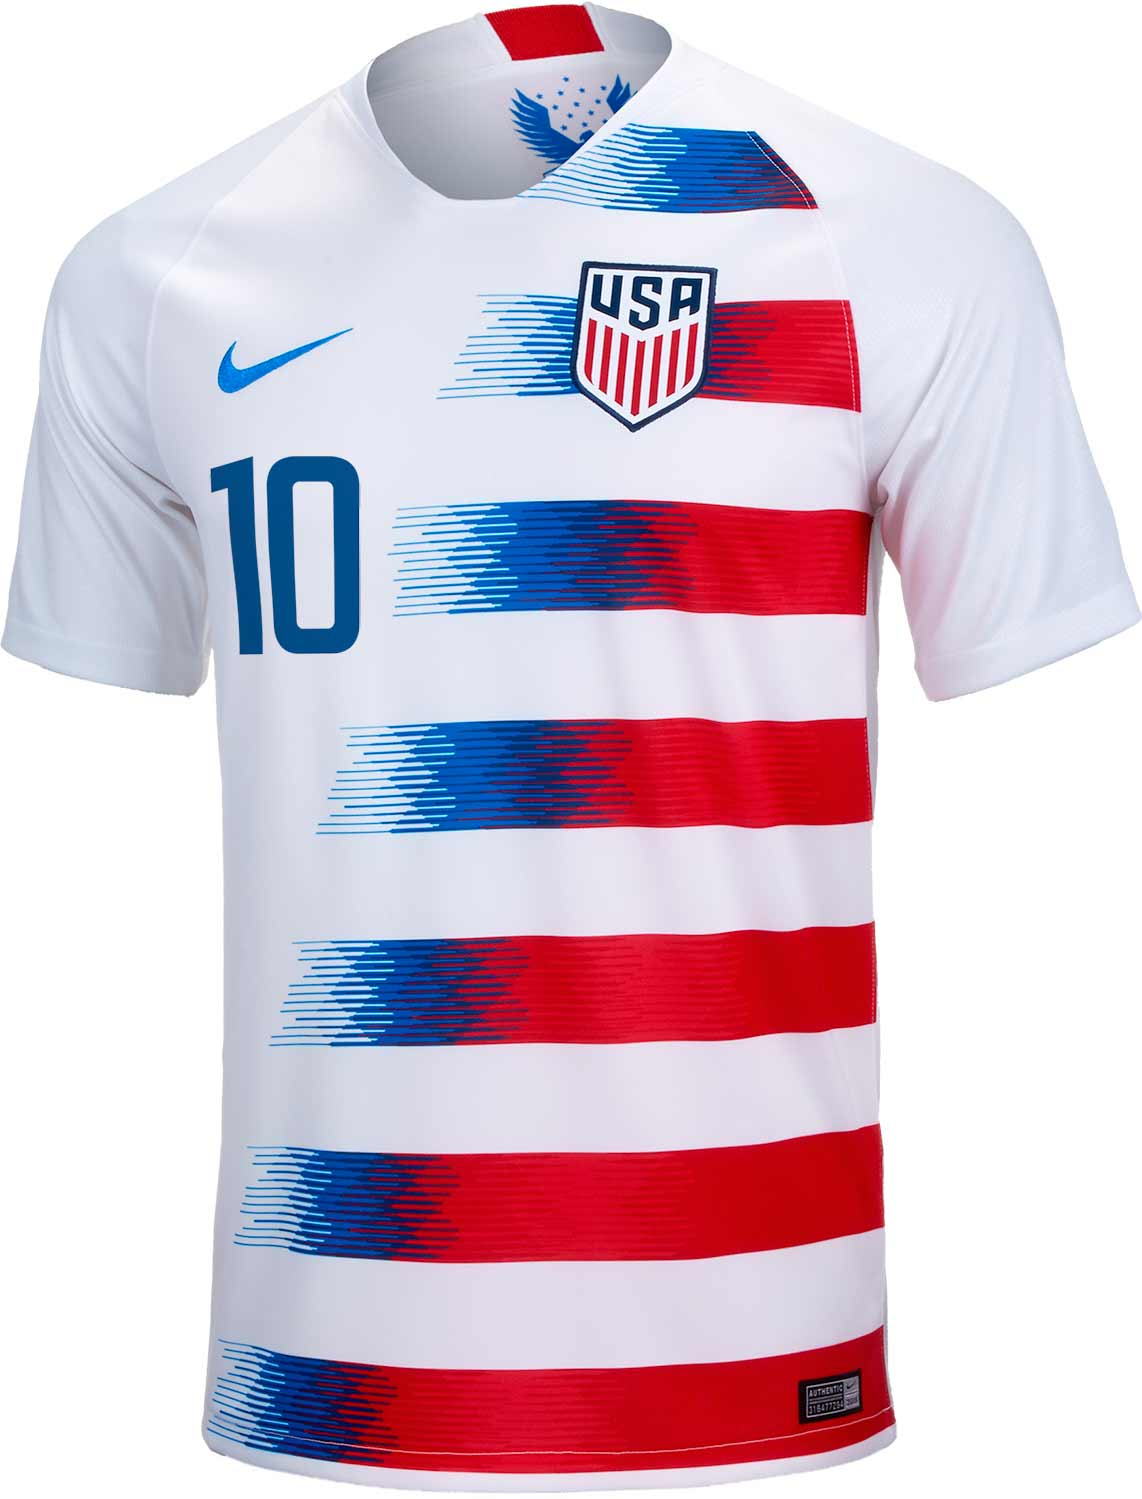 separation shoes 221d1 bb9e9 2018 Nike USMNT USA Christian Pulisic jersey Medium ...